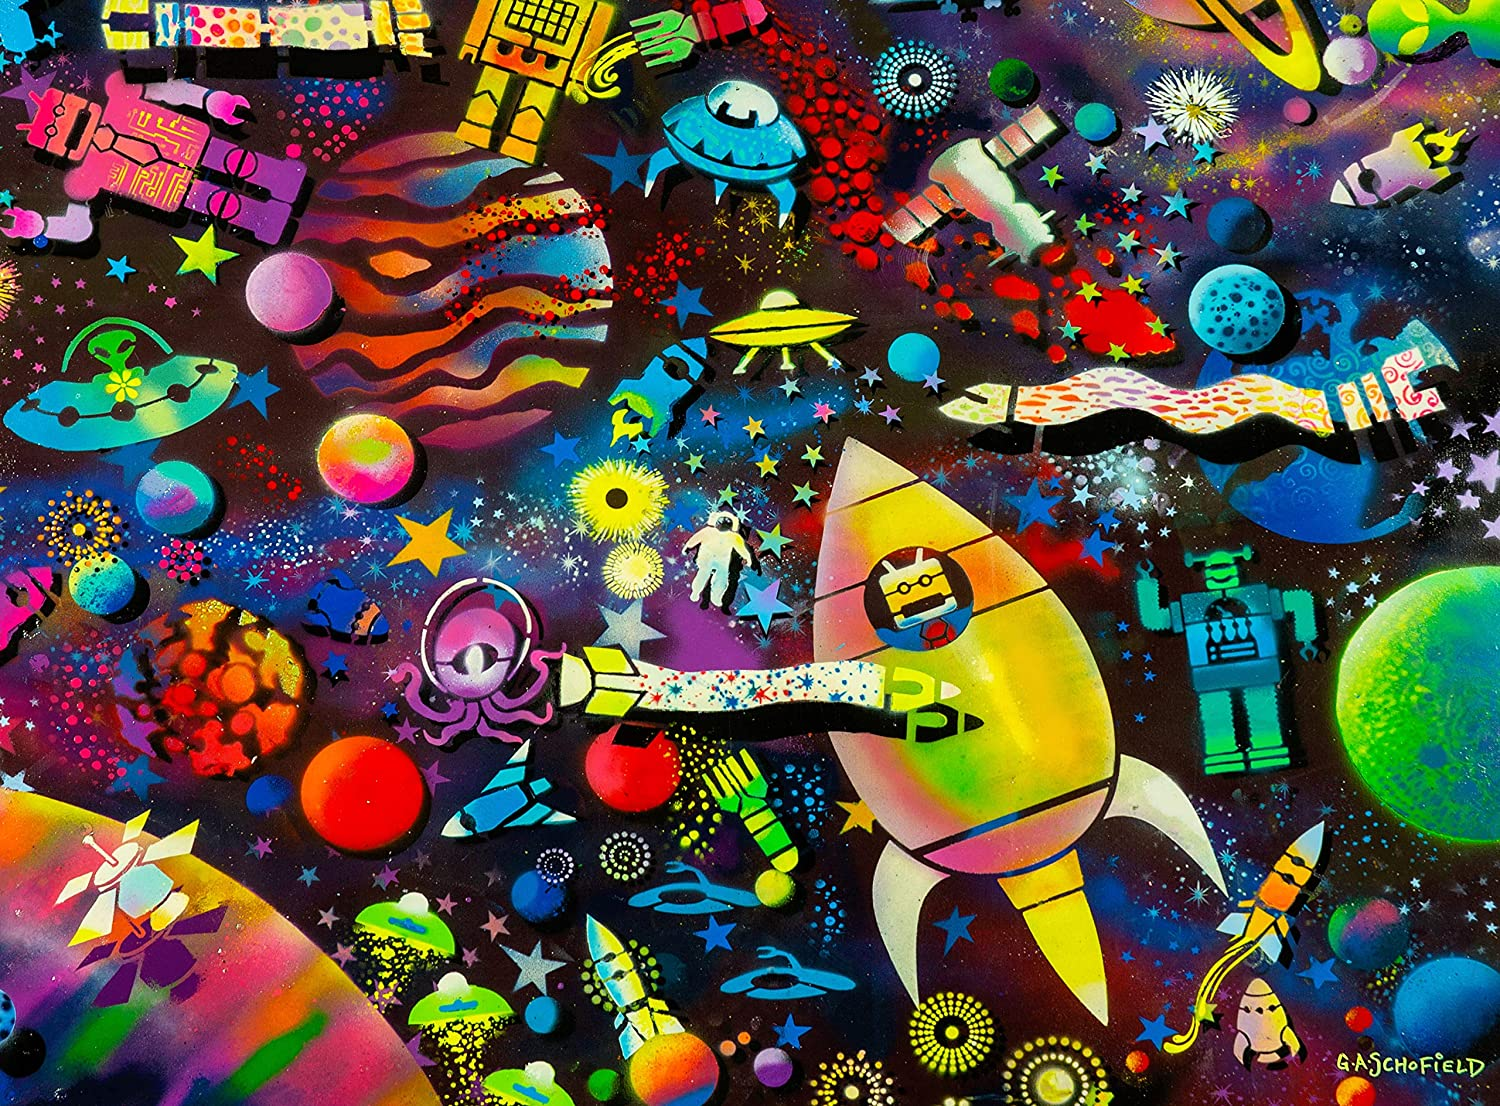 Outer Space Crowded Place 1000 Piece Jigsaw Puzzle